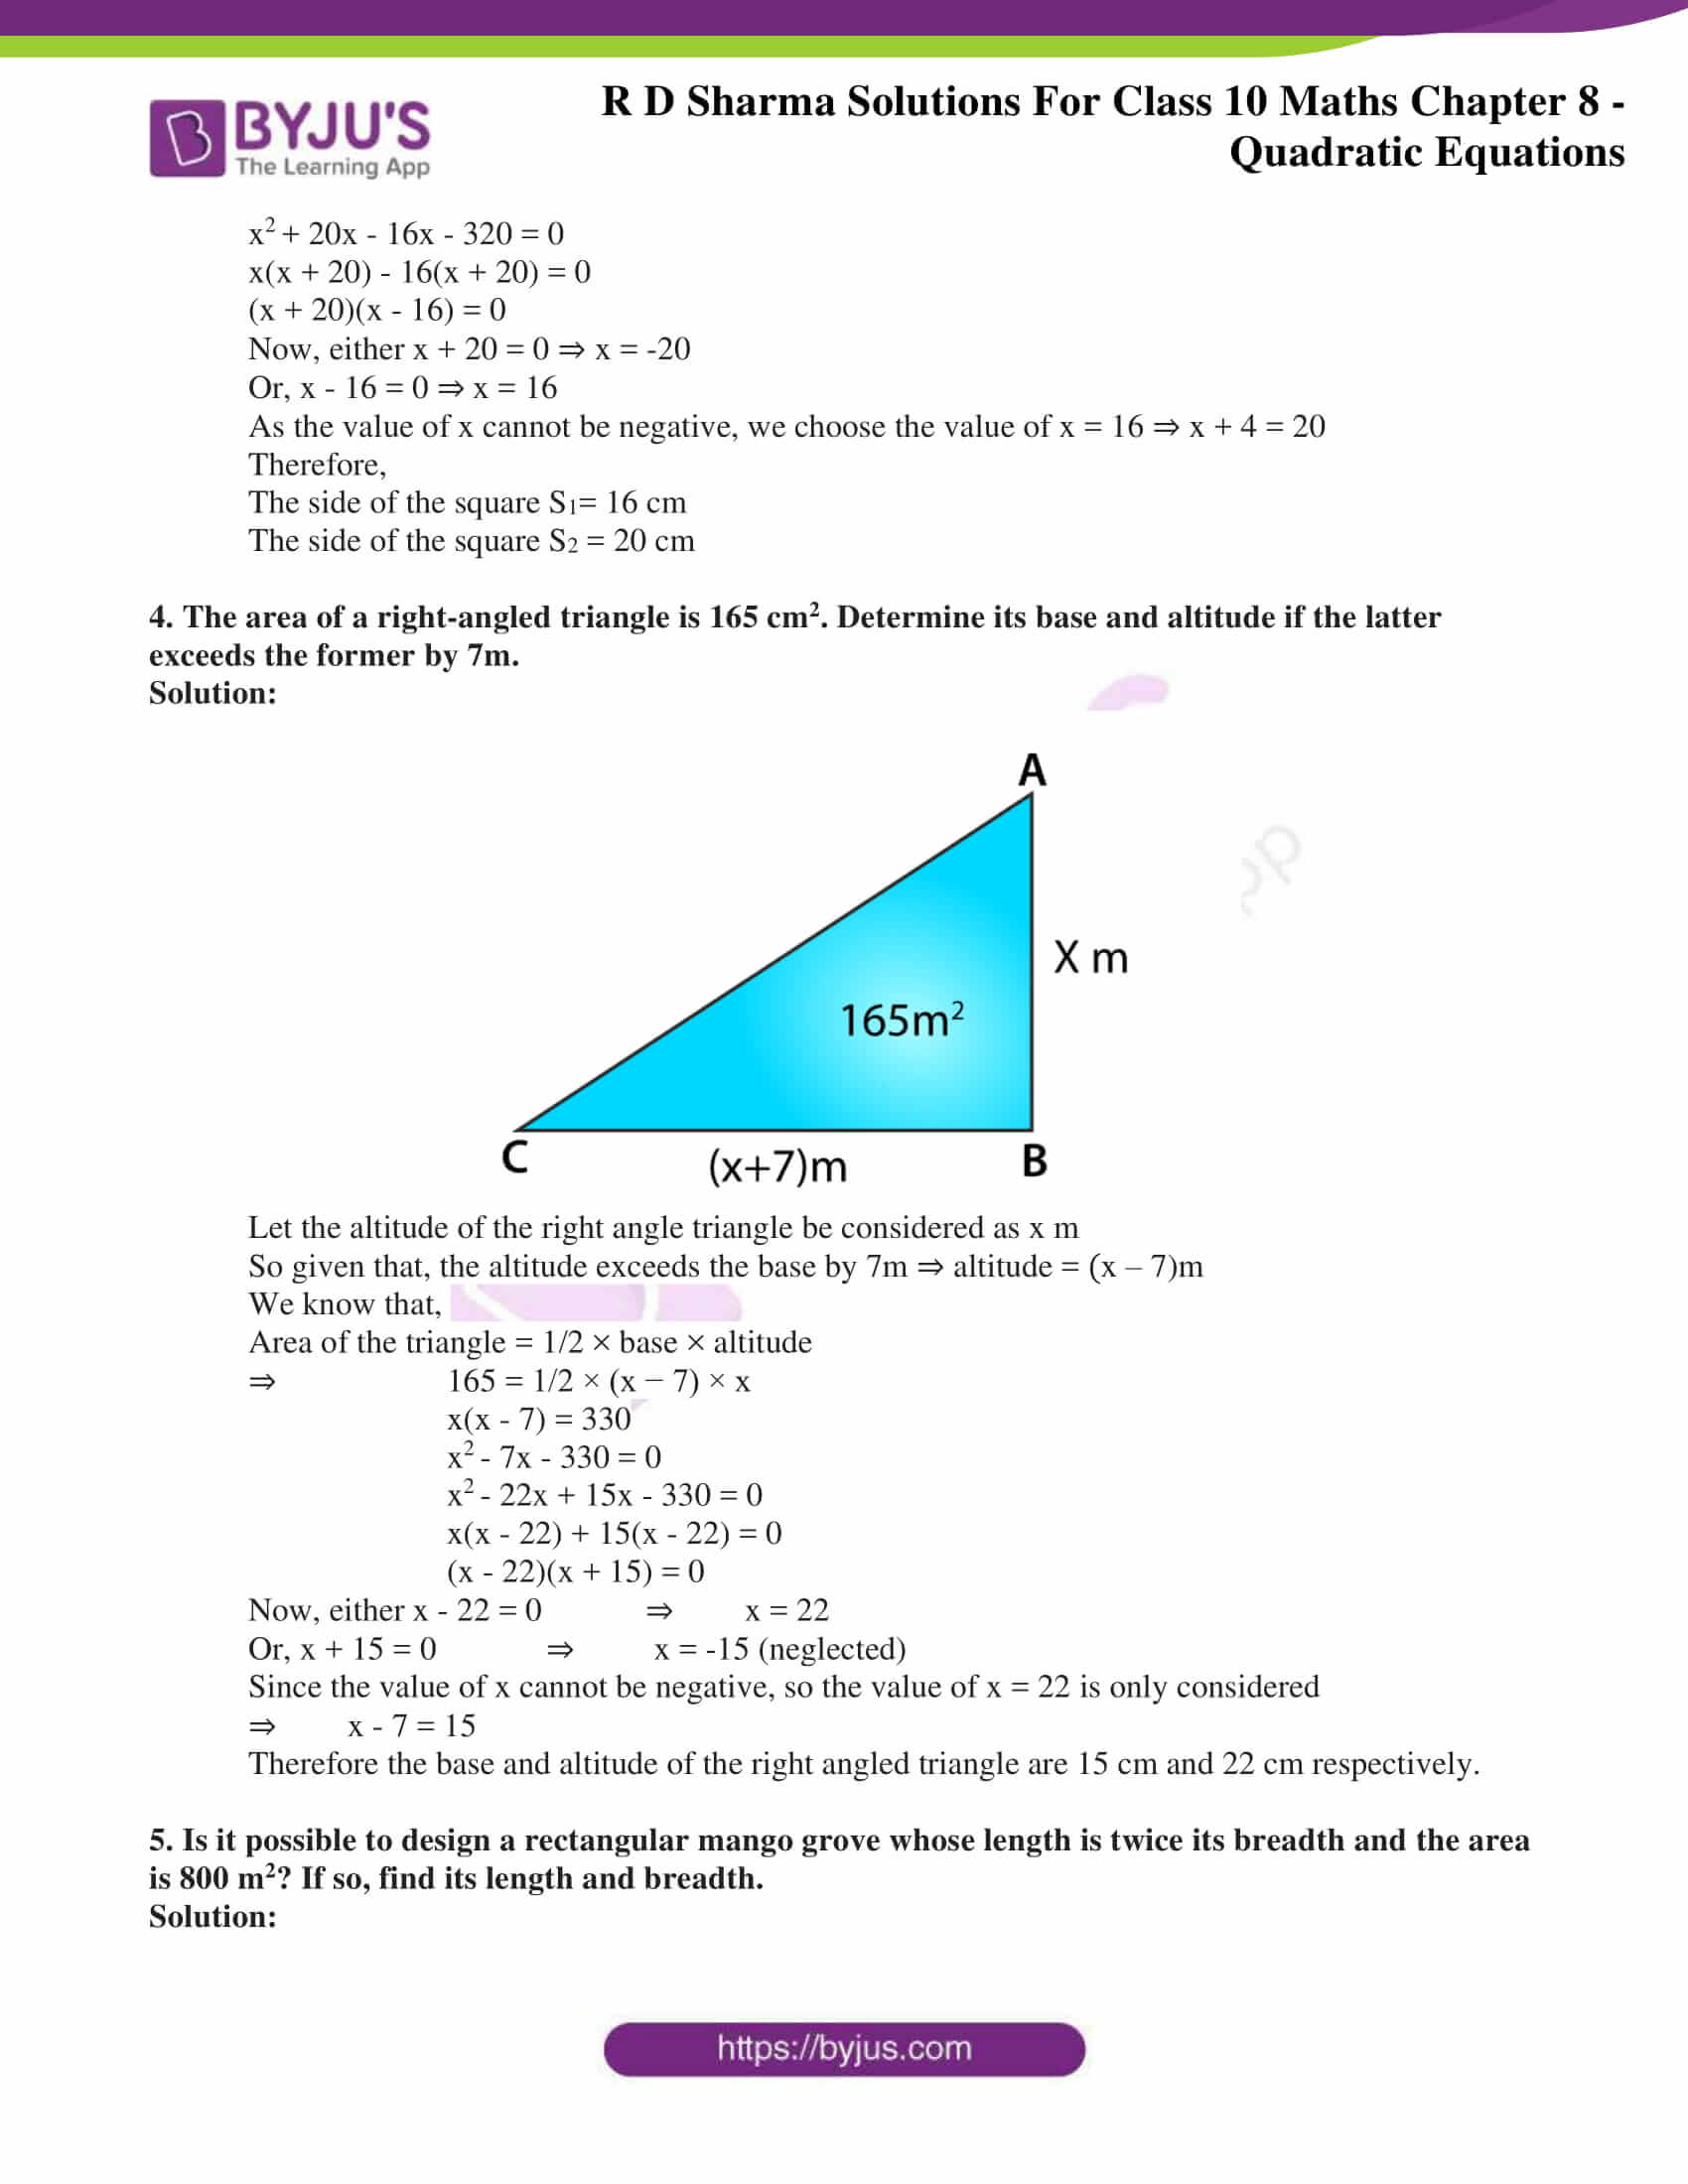 RD Sharma Solutions for Class 10 Chapter 8 Quadratic Equations 68